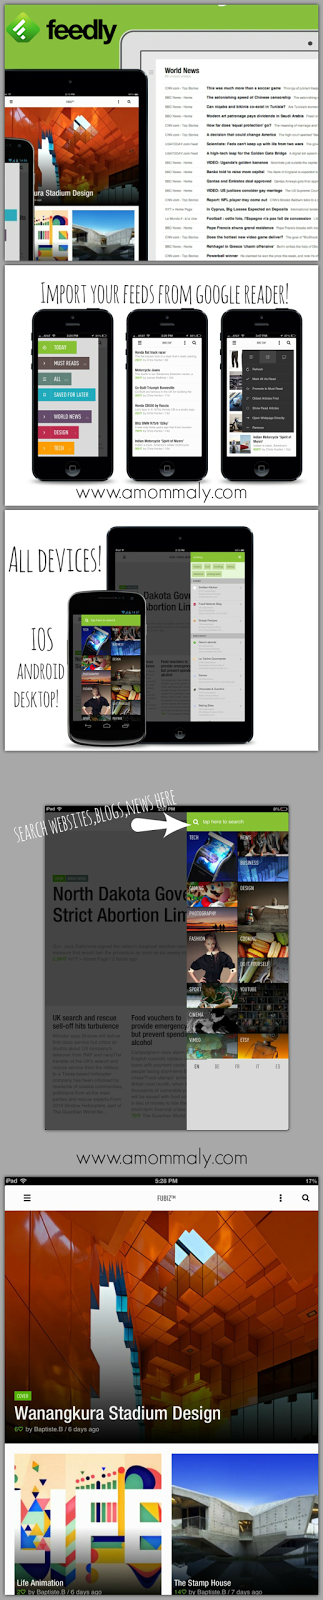 feedly and bloglovin: Replacing Google Reader via amommaly.com